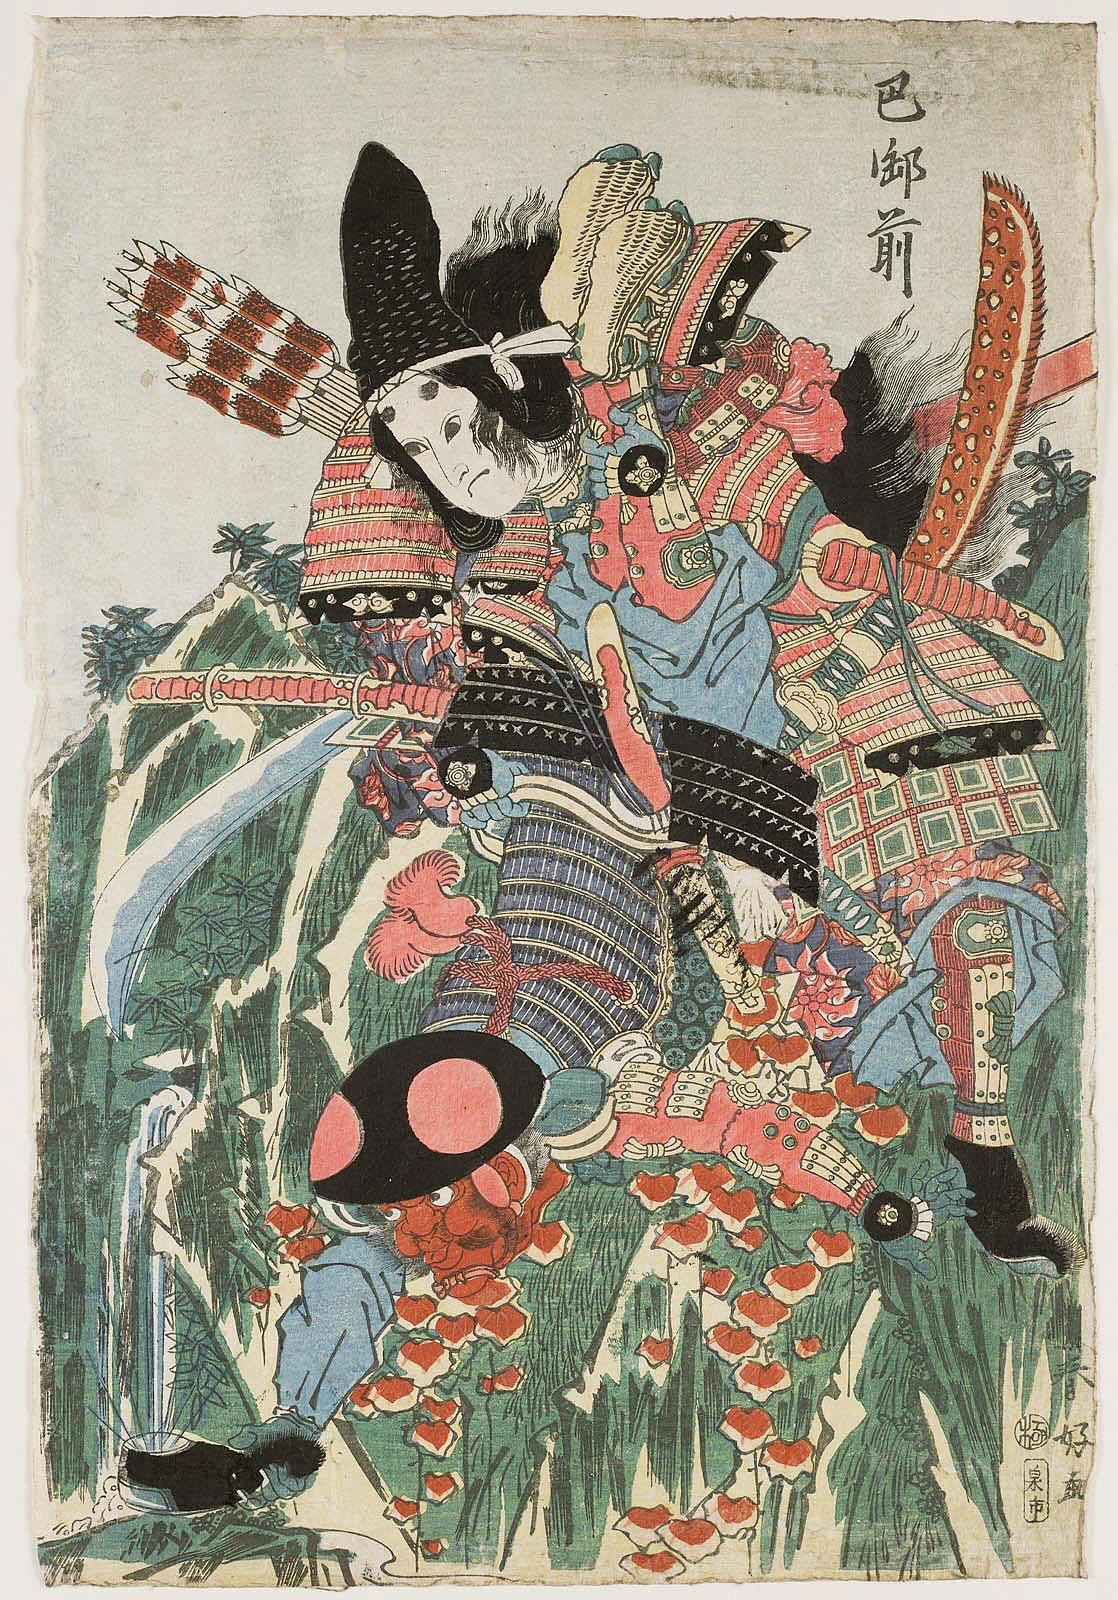 A woodblock print by Katsukawa Shunkô II, depicting Tomoe Gozen.